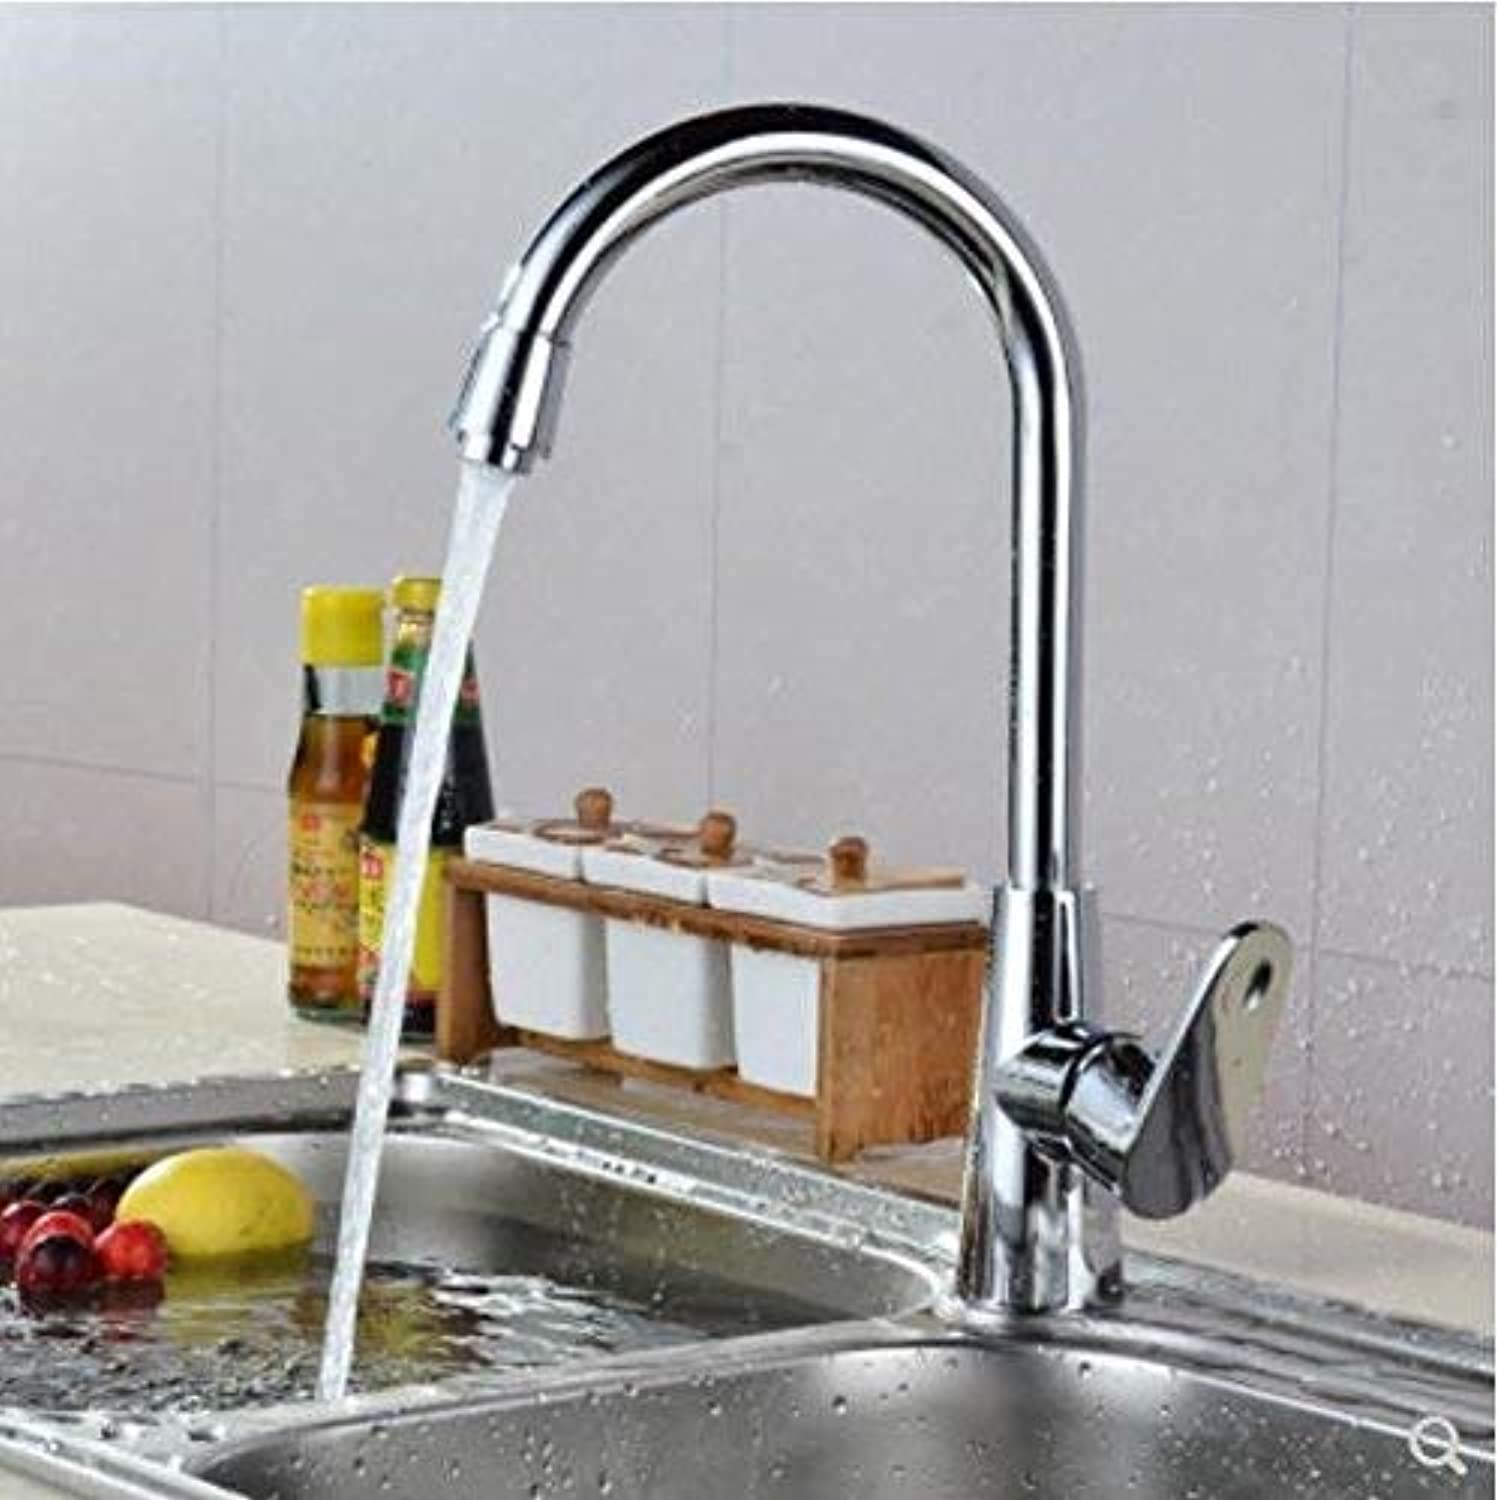 FuweiEncore Kitchen Faucet Hot and Cold Local Copper Core Wash Vegetable Basin Faucet Stainless Steel Tank Faucet redatable (color   -, Size   -)